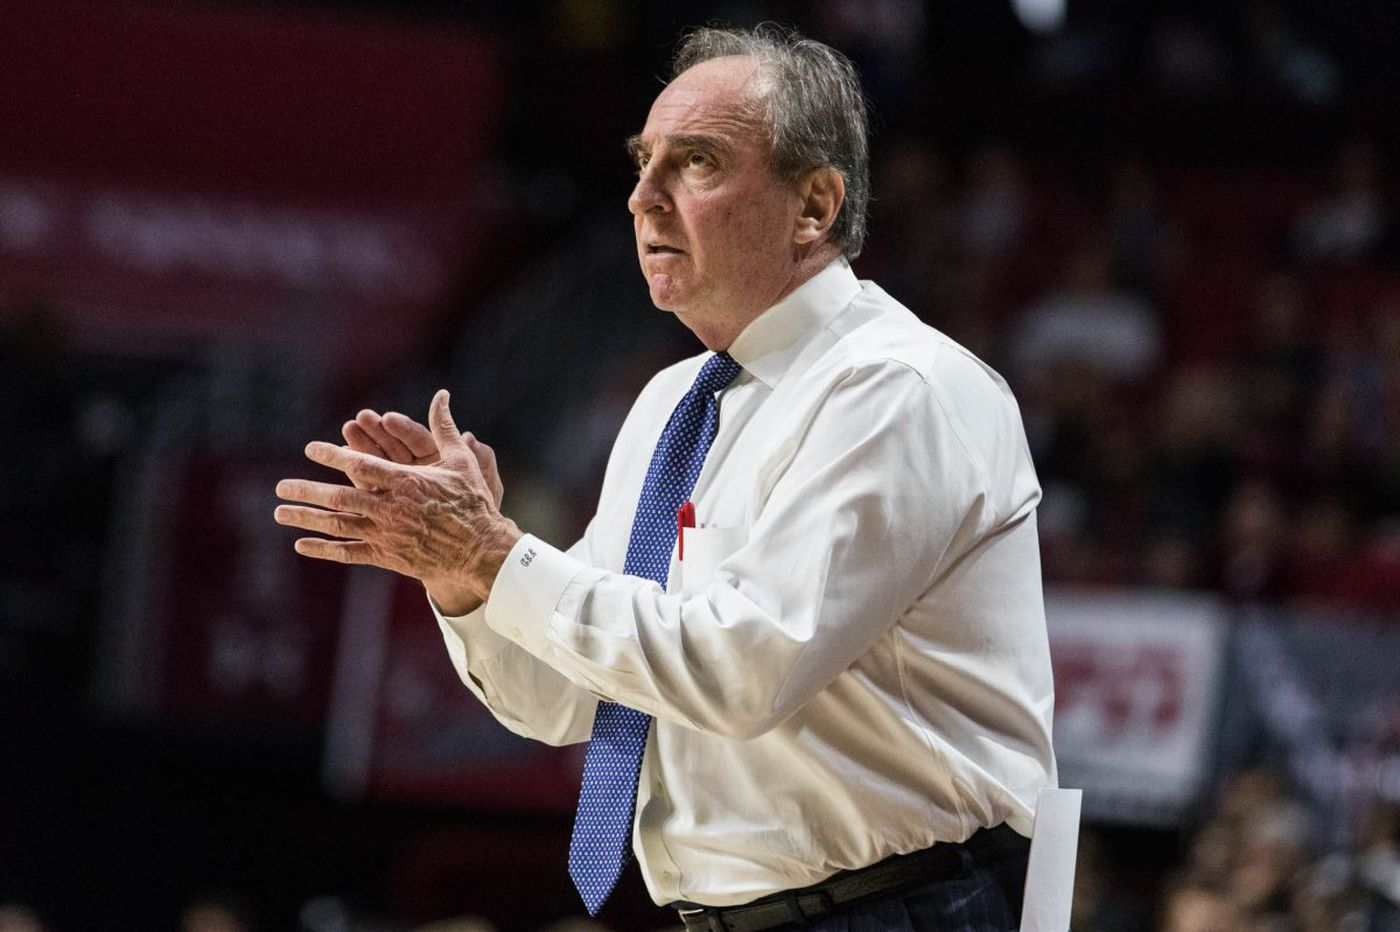 Negotiations ongoing over Fran Dunphy's exit from Temple, source says